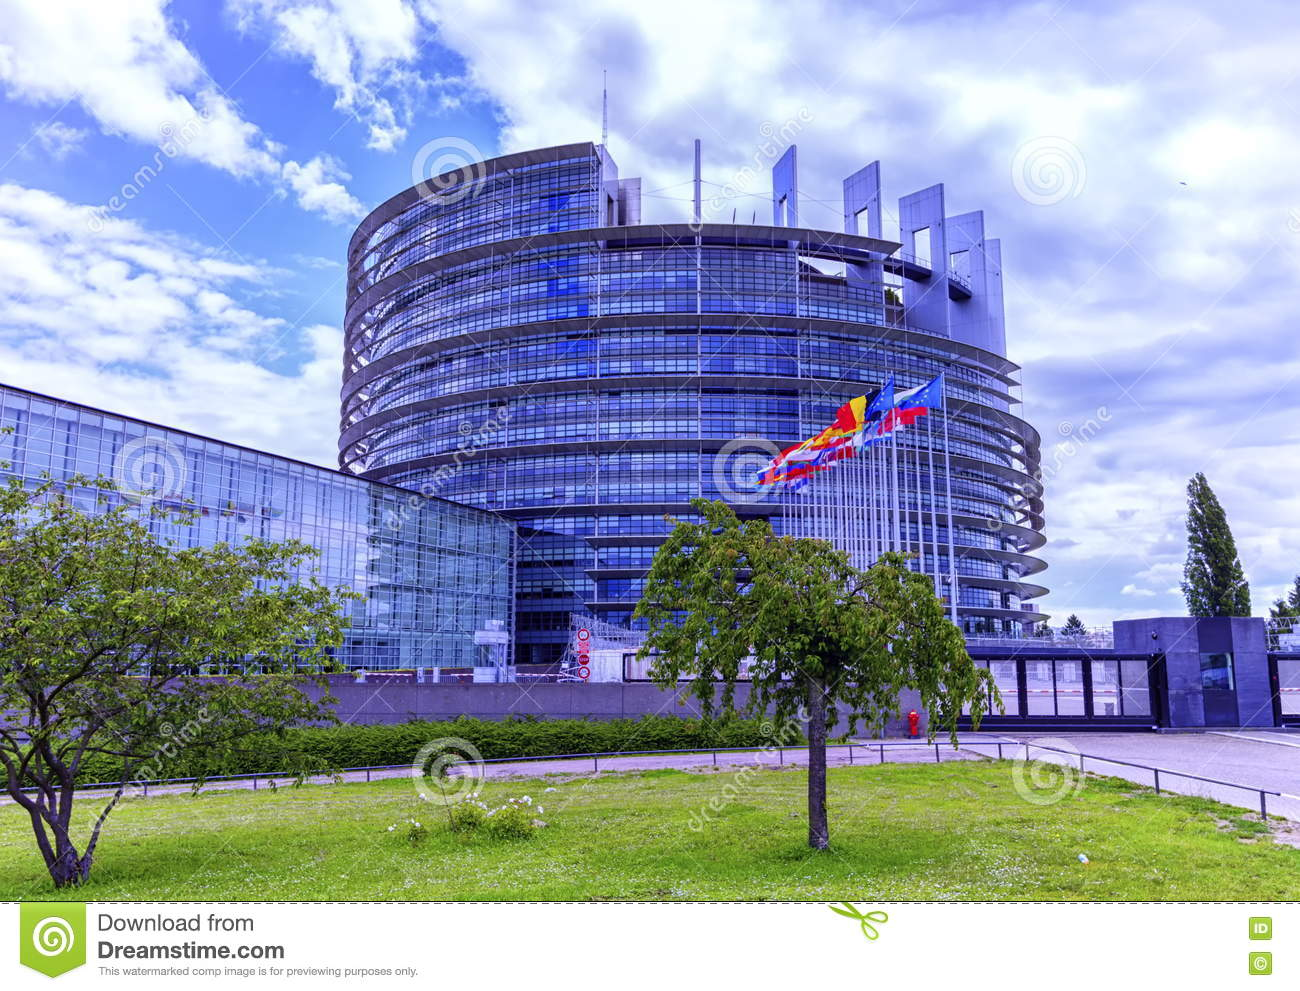 strasbourg france june 19 2016 european parliament louise weiss building 1999 in wacken. Black Bedroom Furniture Sets. Home Design Ideas